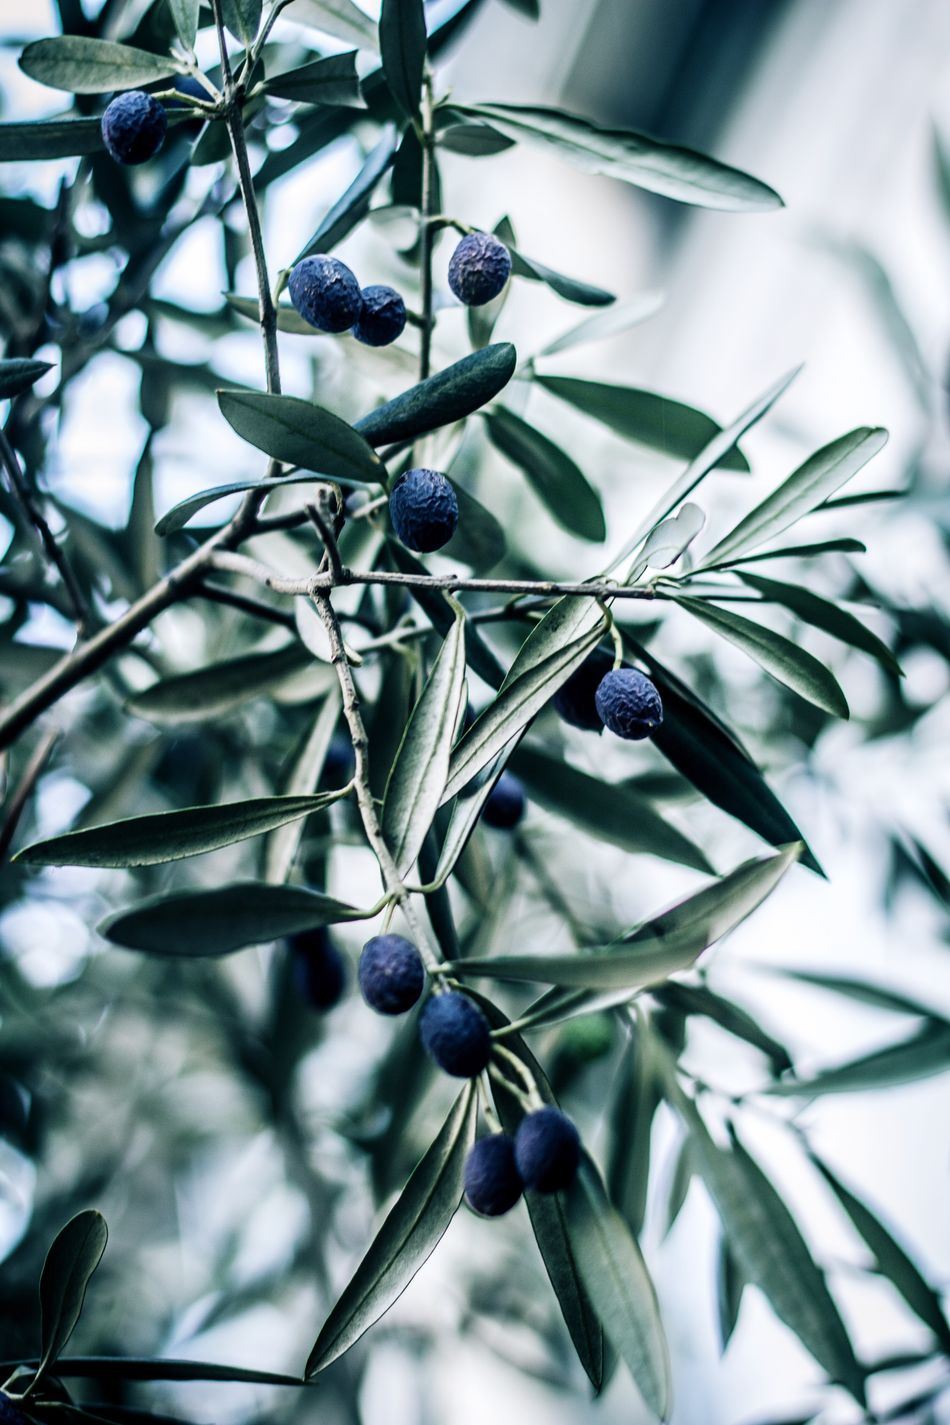 Olive Olive Tree Olives Leafs Olives Tree Outside Leafs Close-up Nature Growth Outdoors Beauty In Nature Freshness